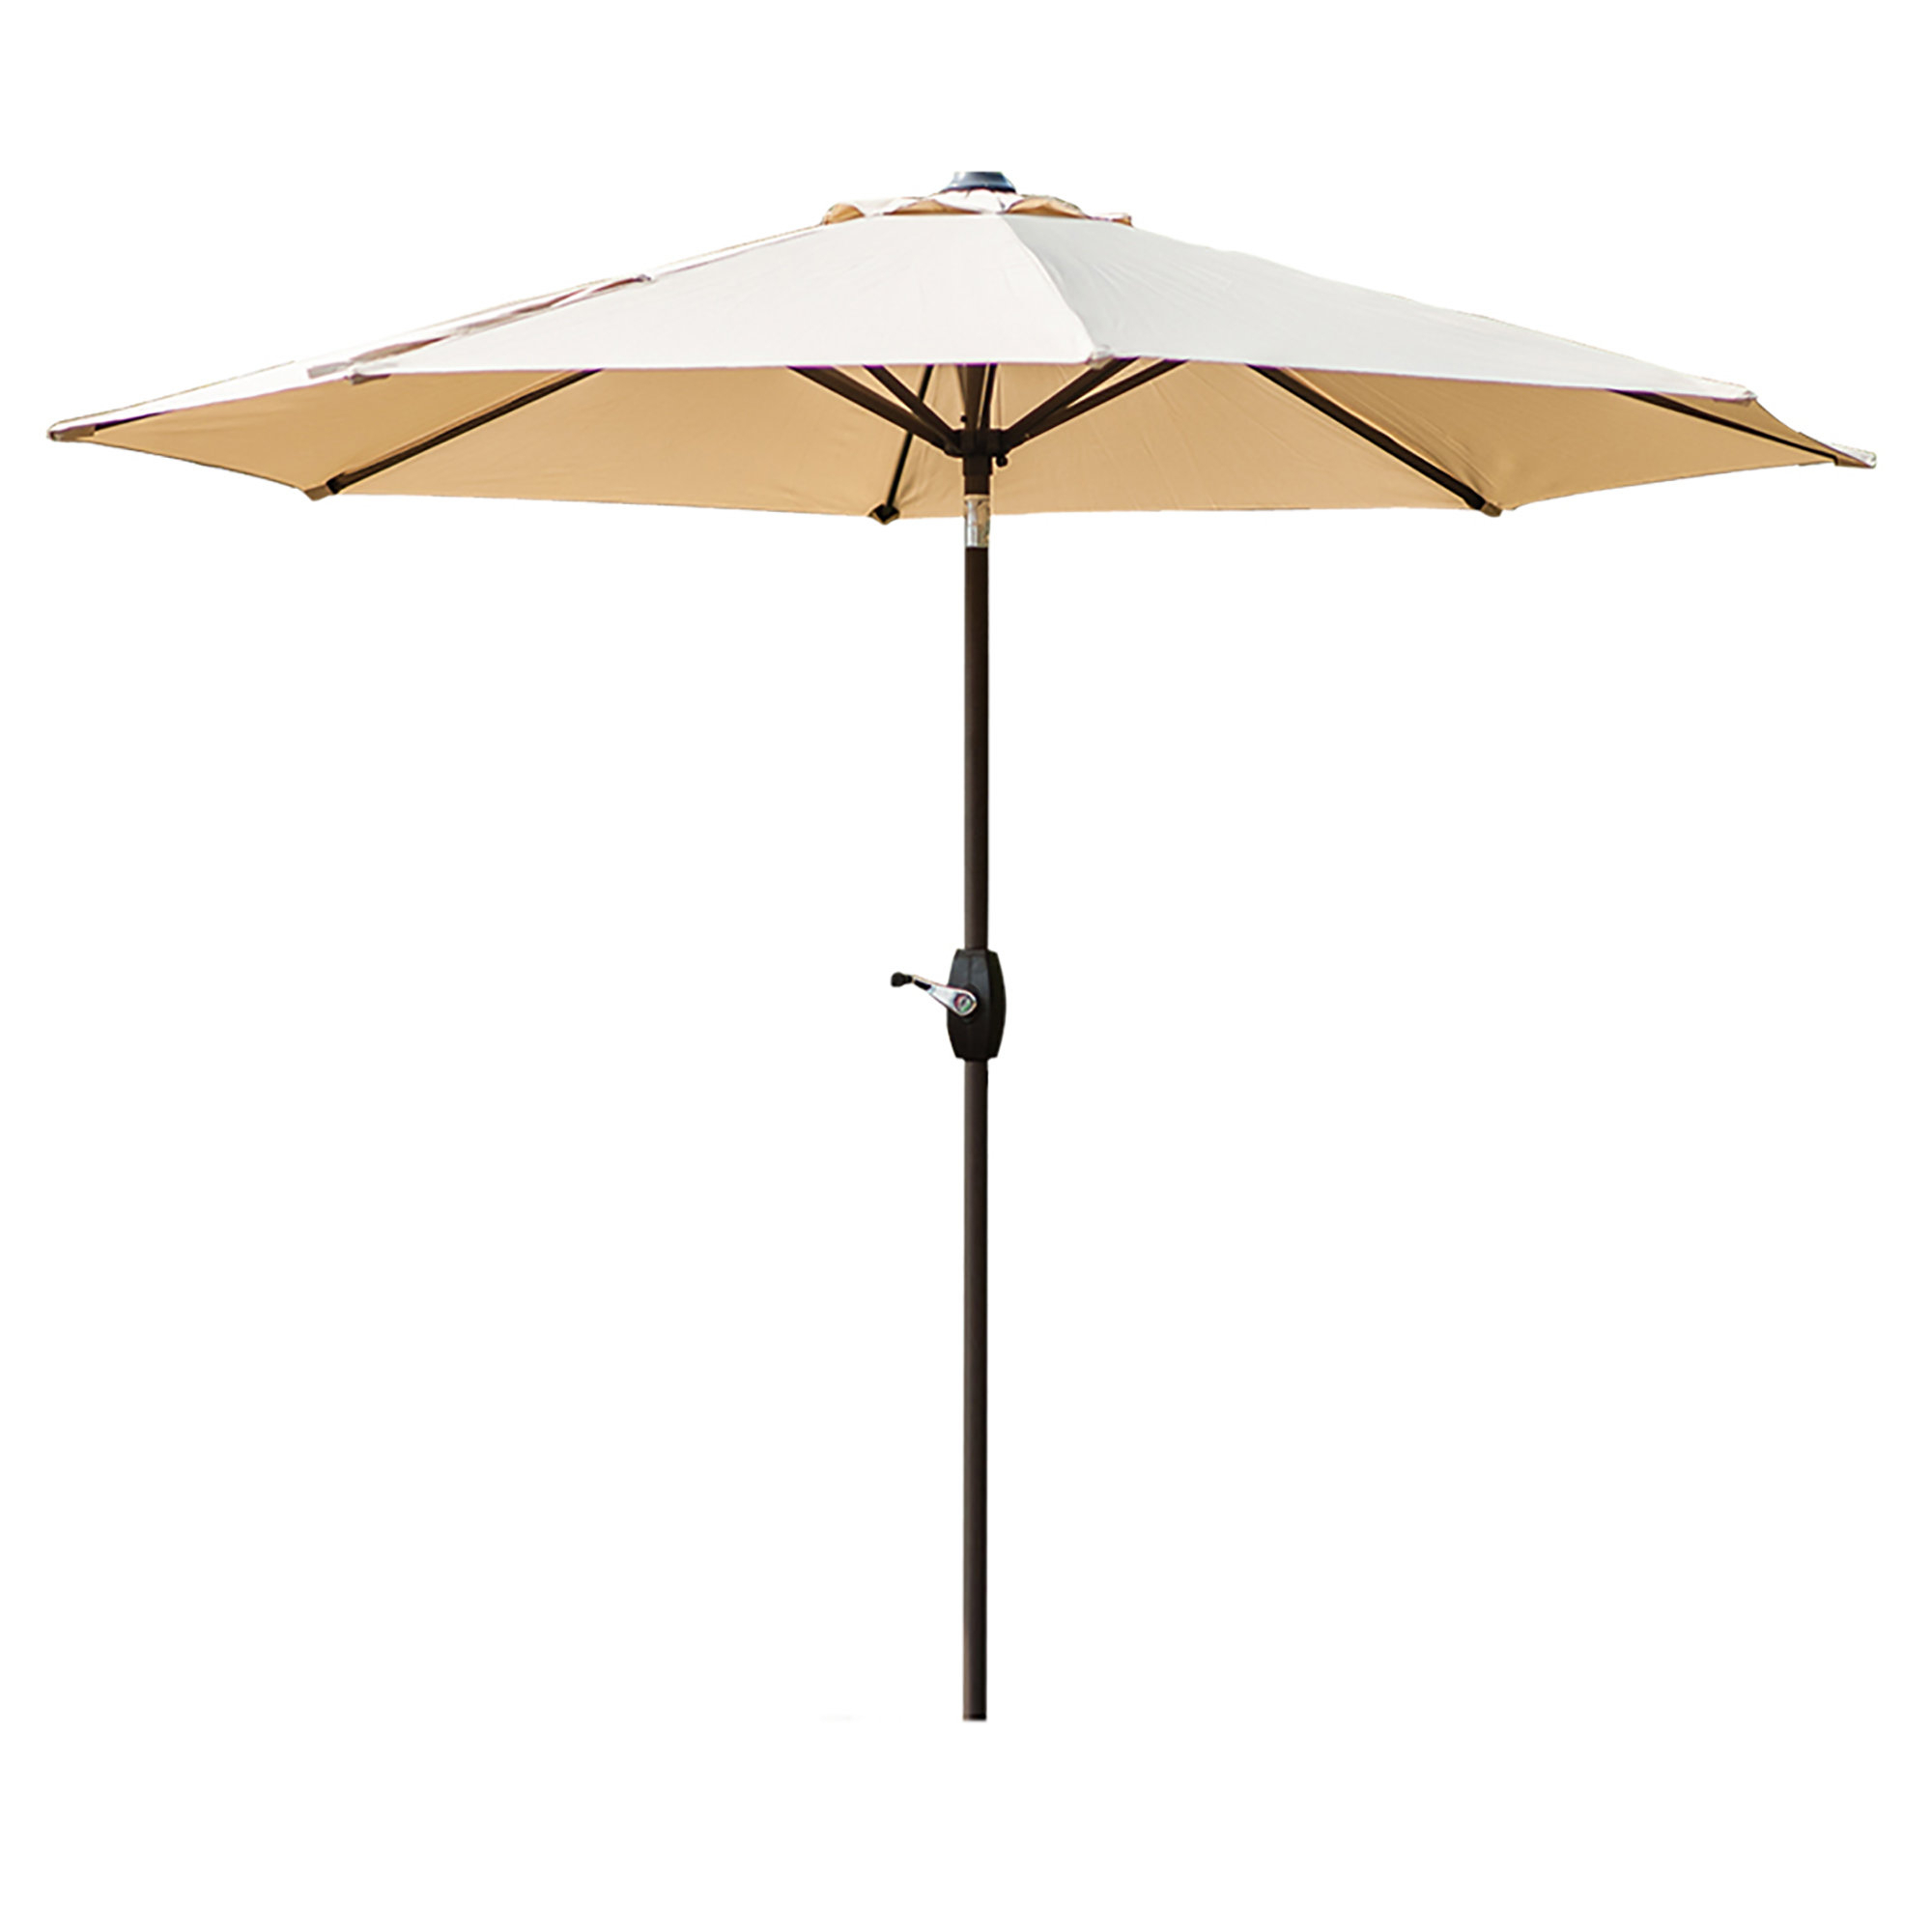 Dade City North Half Market Umbrellas Throughout Current Charlton Home Kenn 9' Market Umbrella (View 11 of 20)